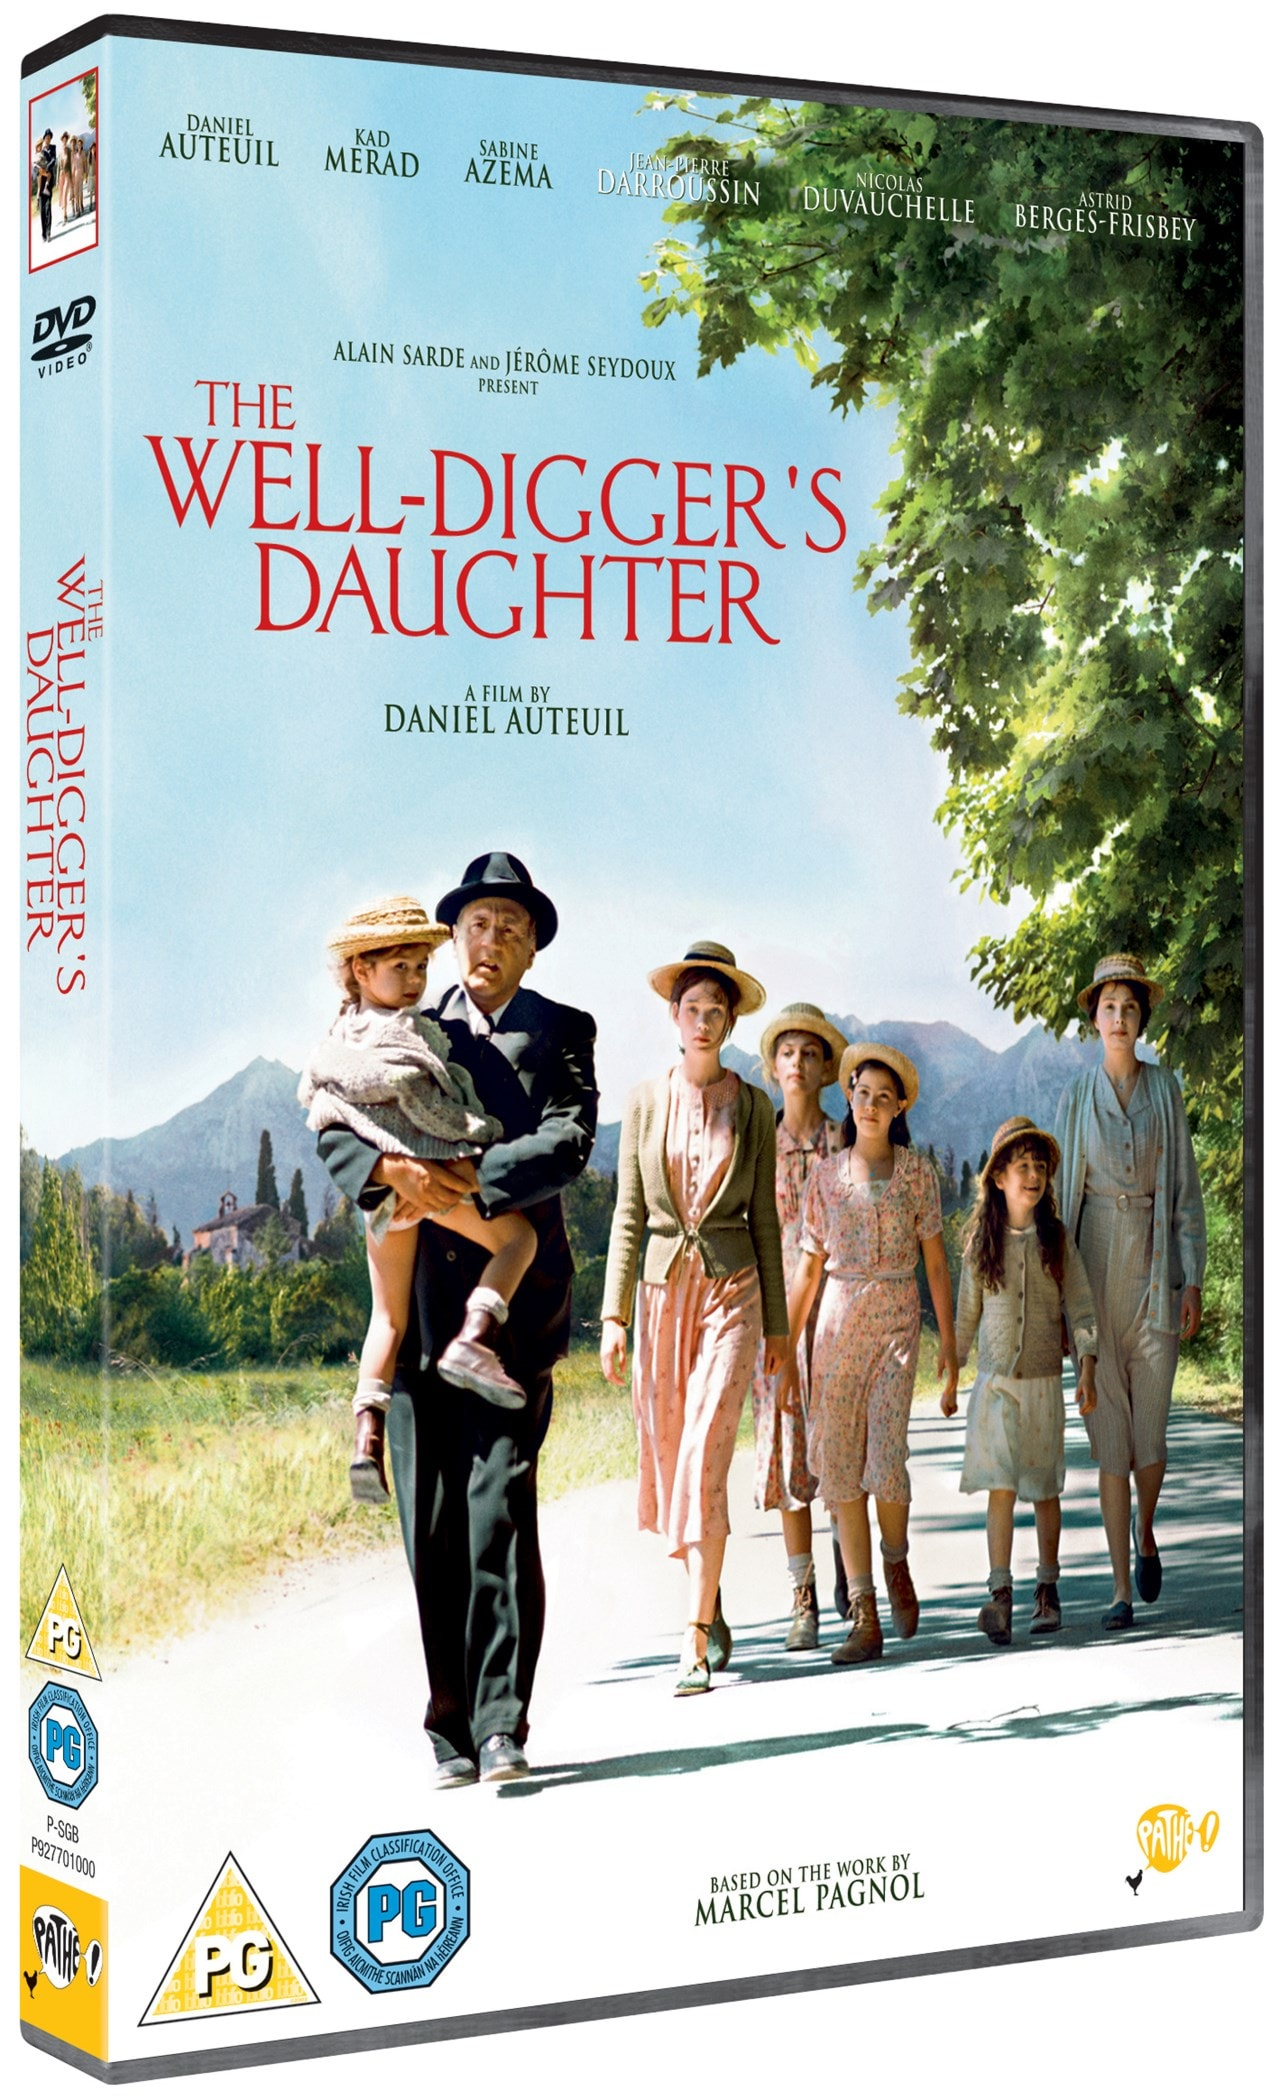 The Well-digger's Daughter - 2